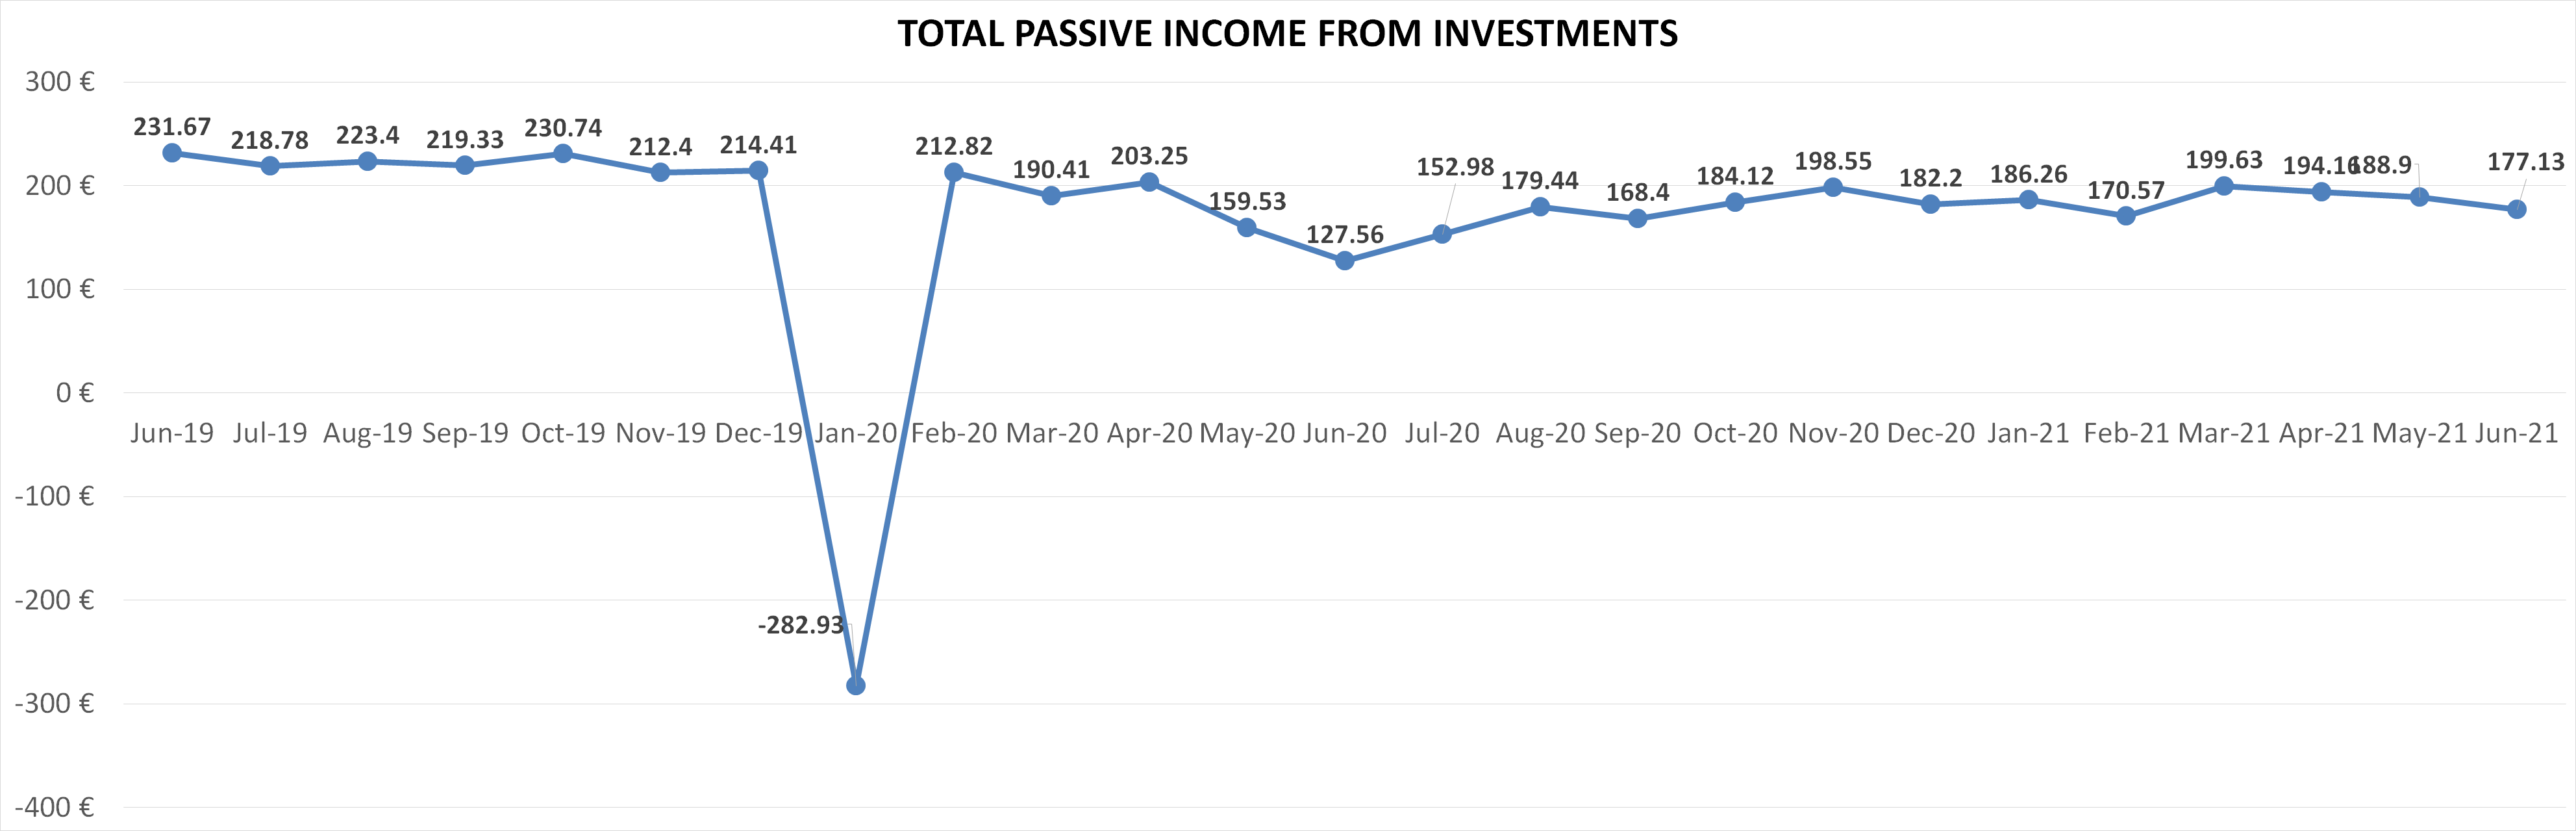 Total passive income from investments june 2021